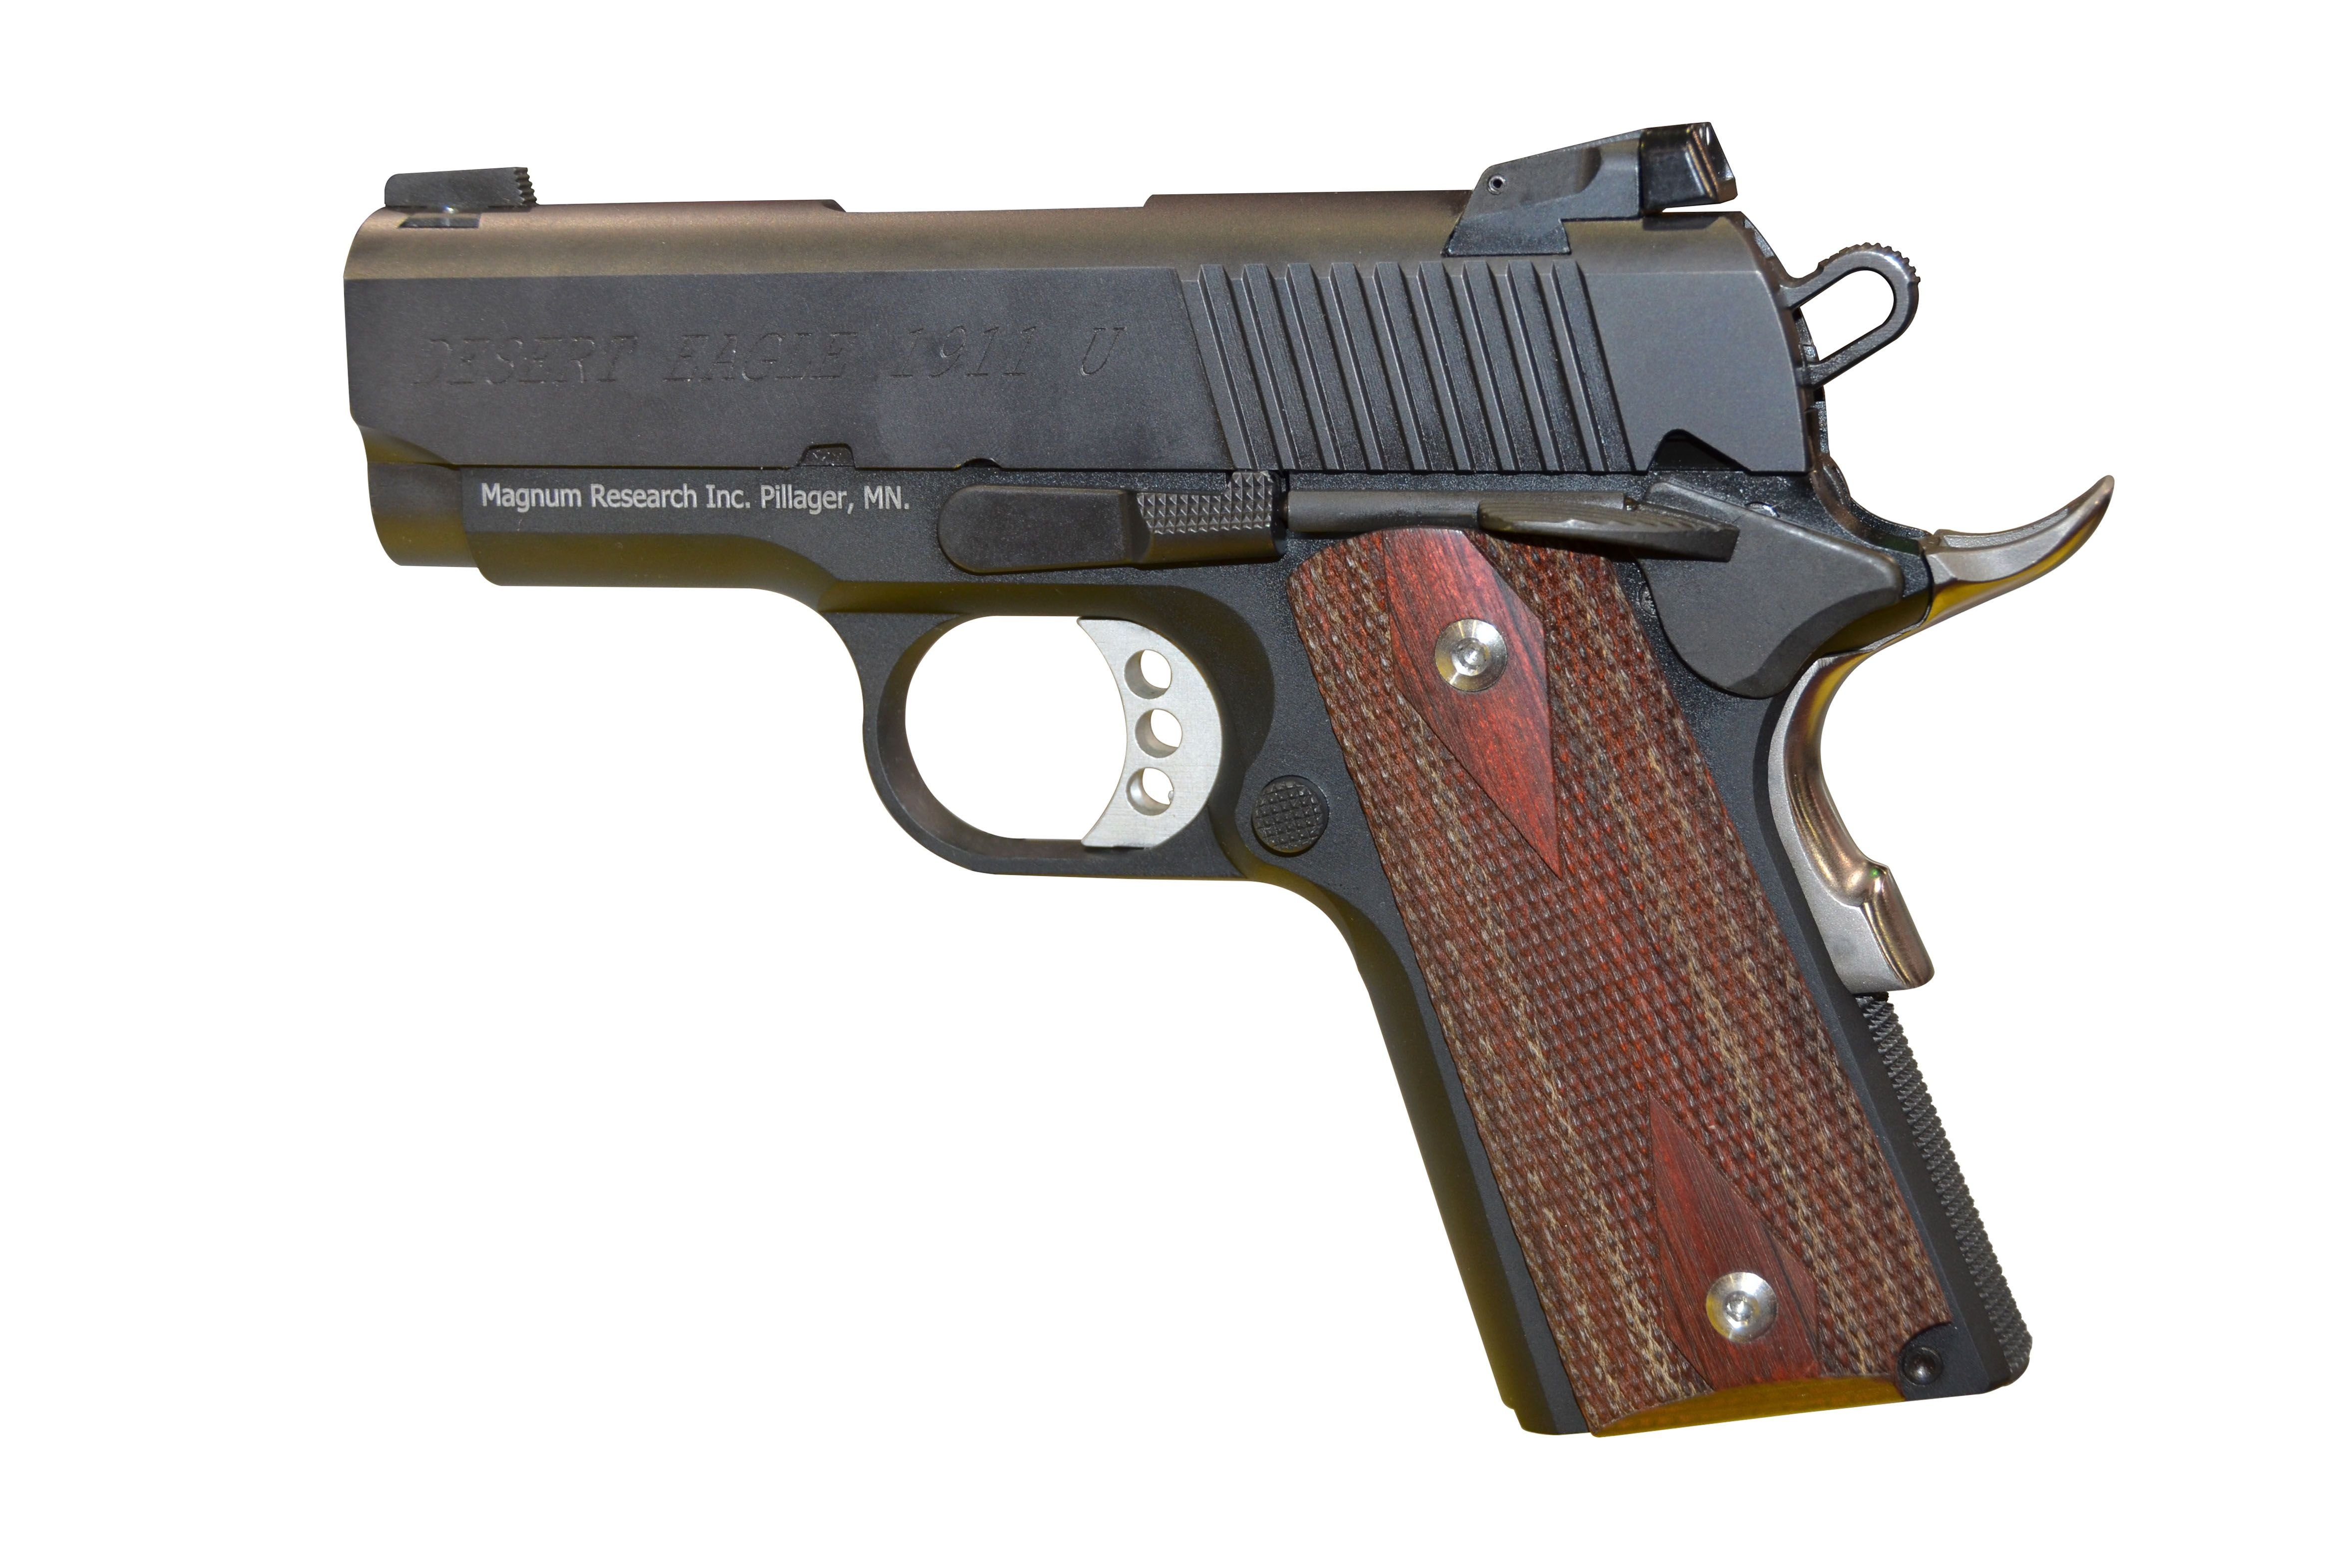 Magnum Research Offers New Ultra-Compact 1911